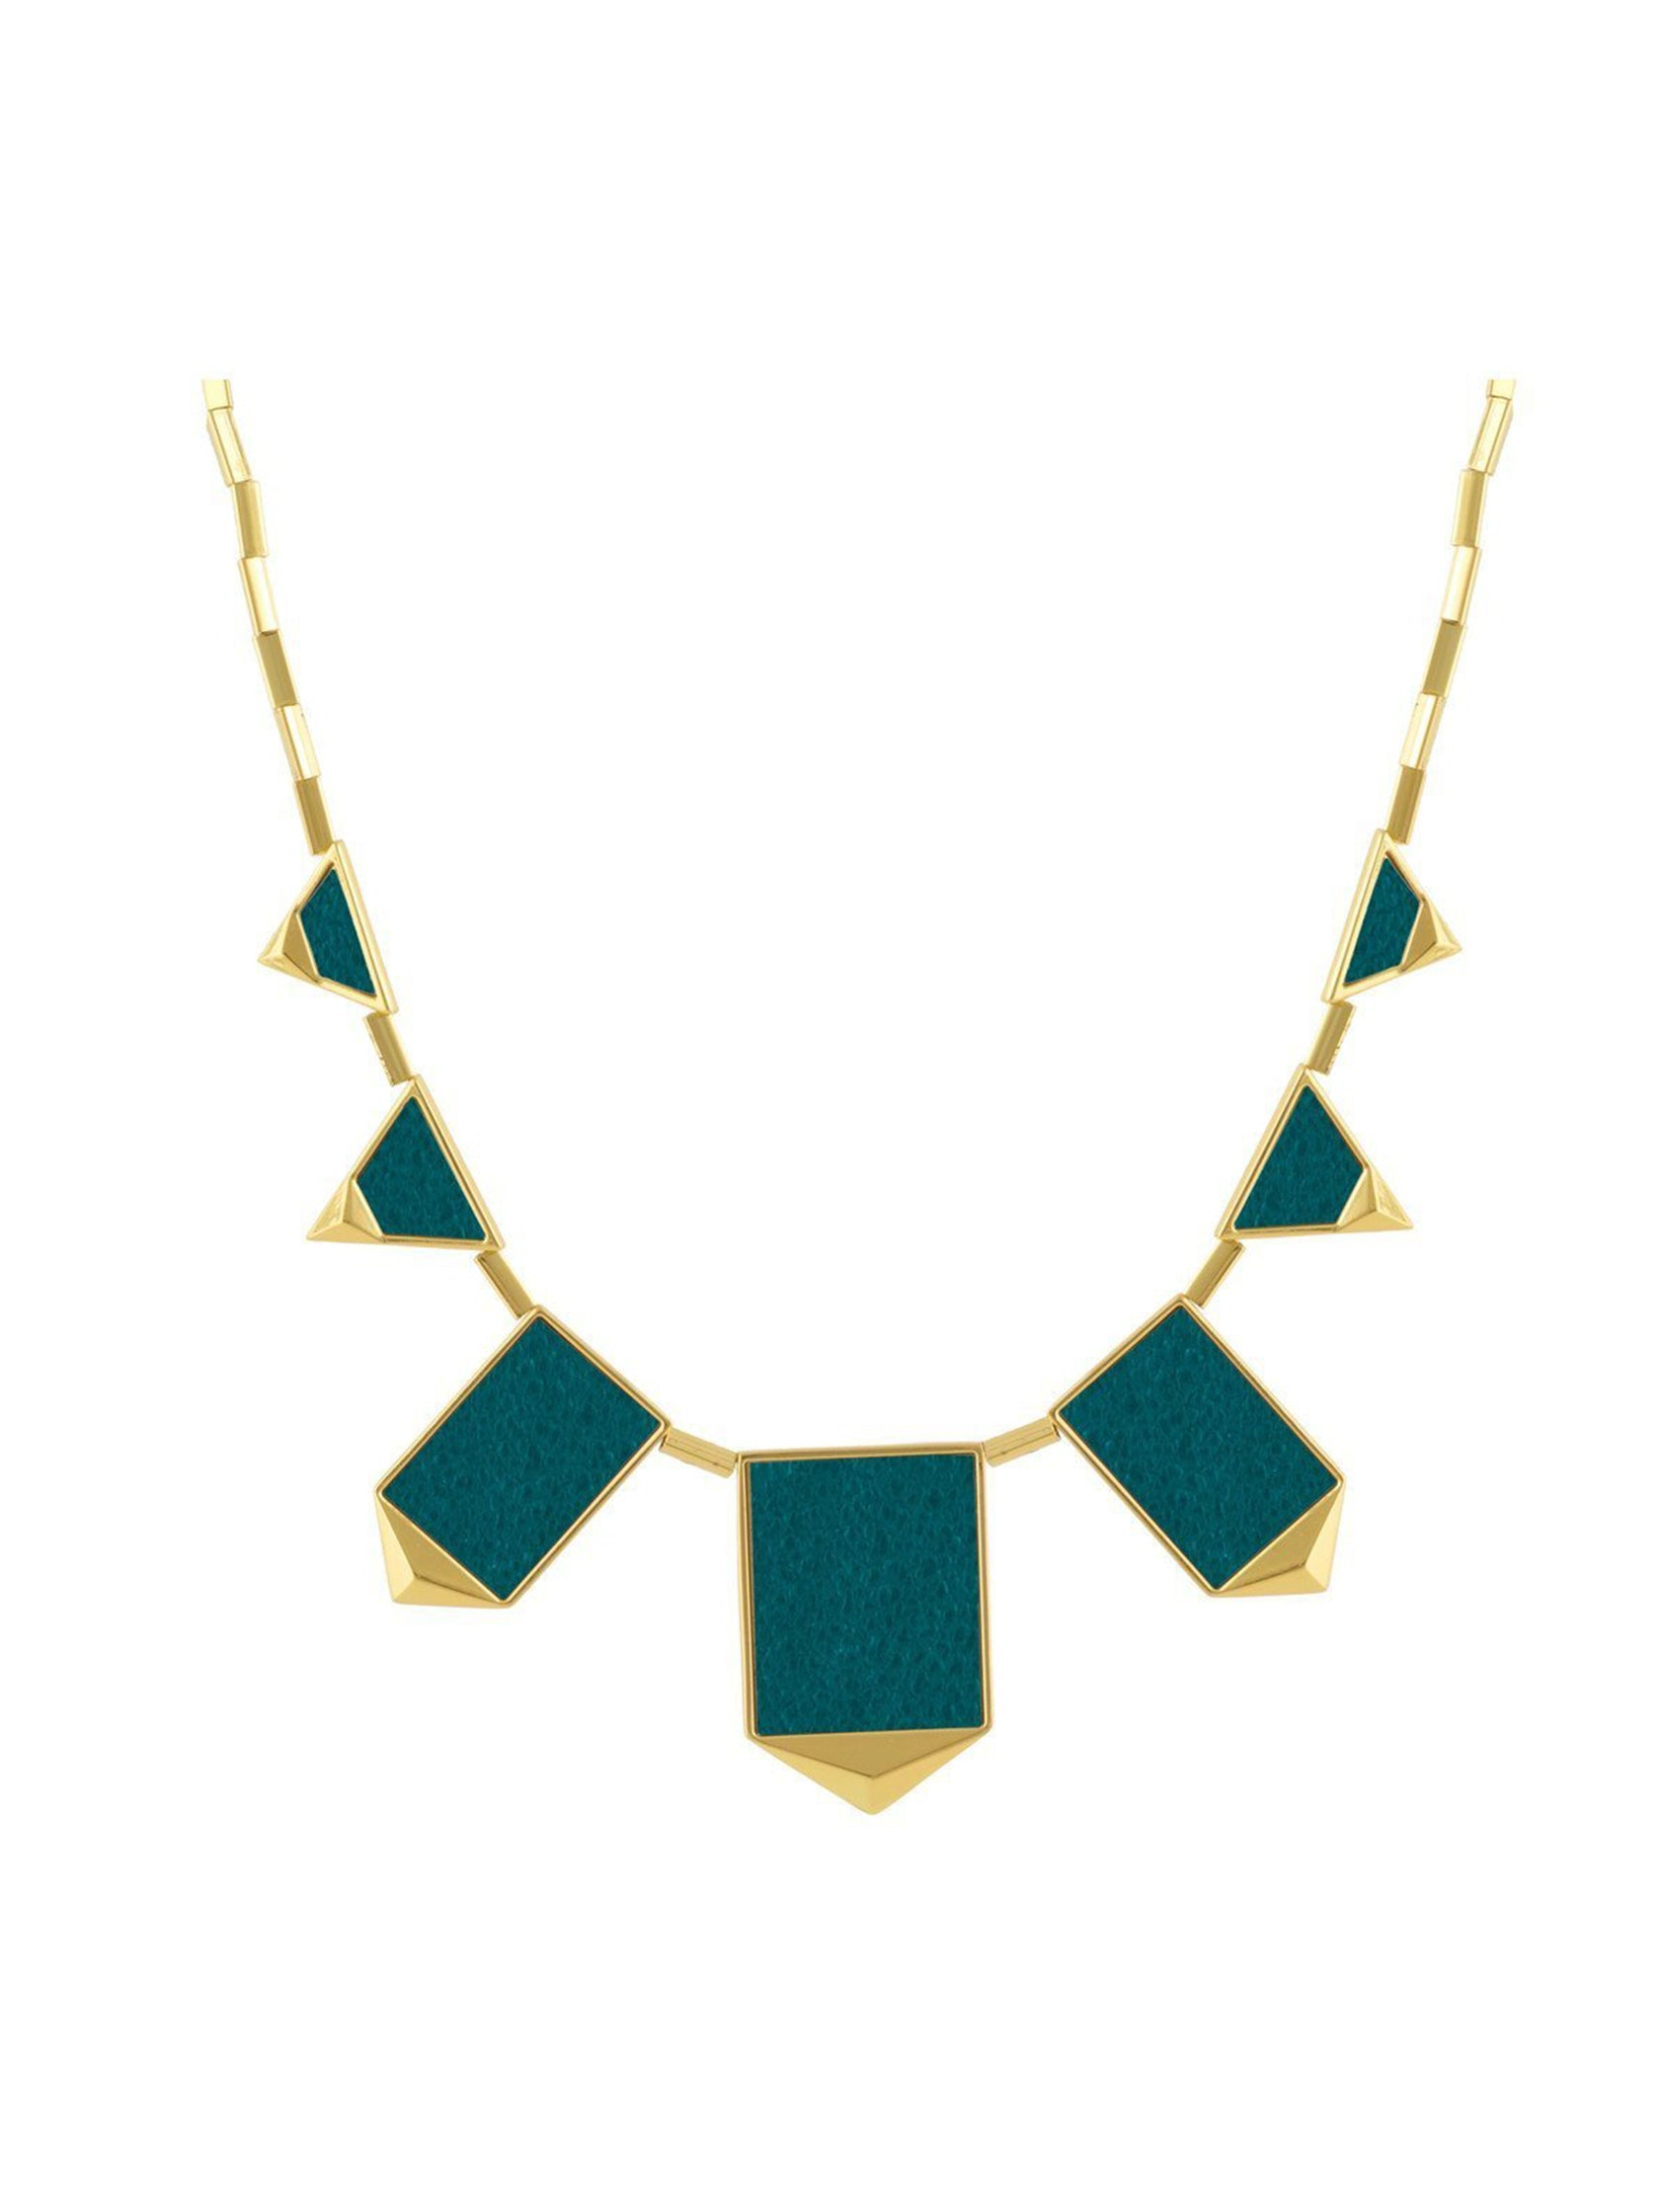 Women outfit in a necklace rental from House of Harlow 1960 called Classic Station Pyramid Necklace